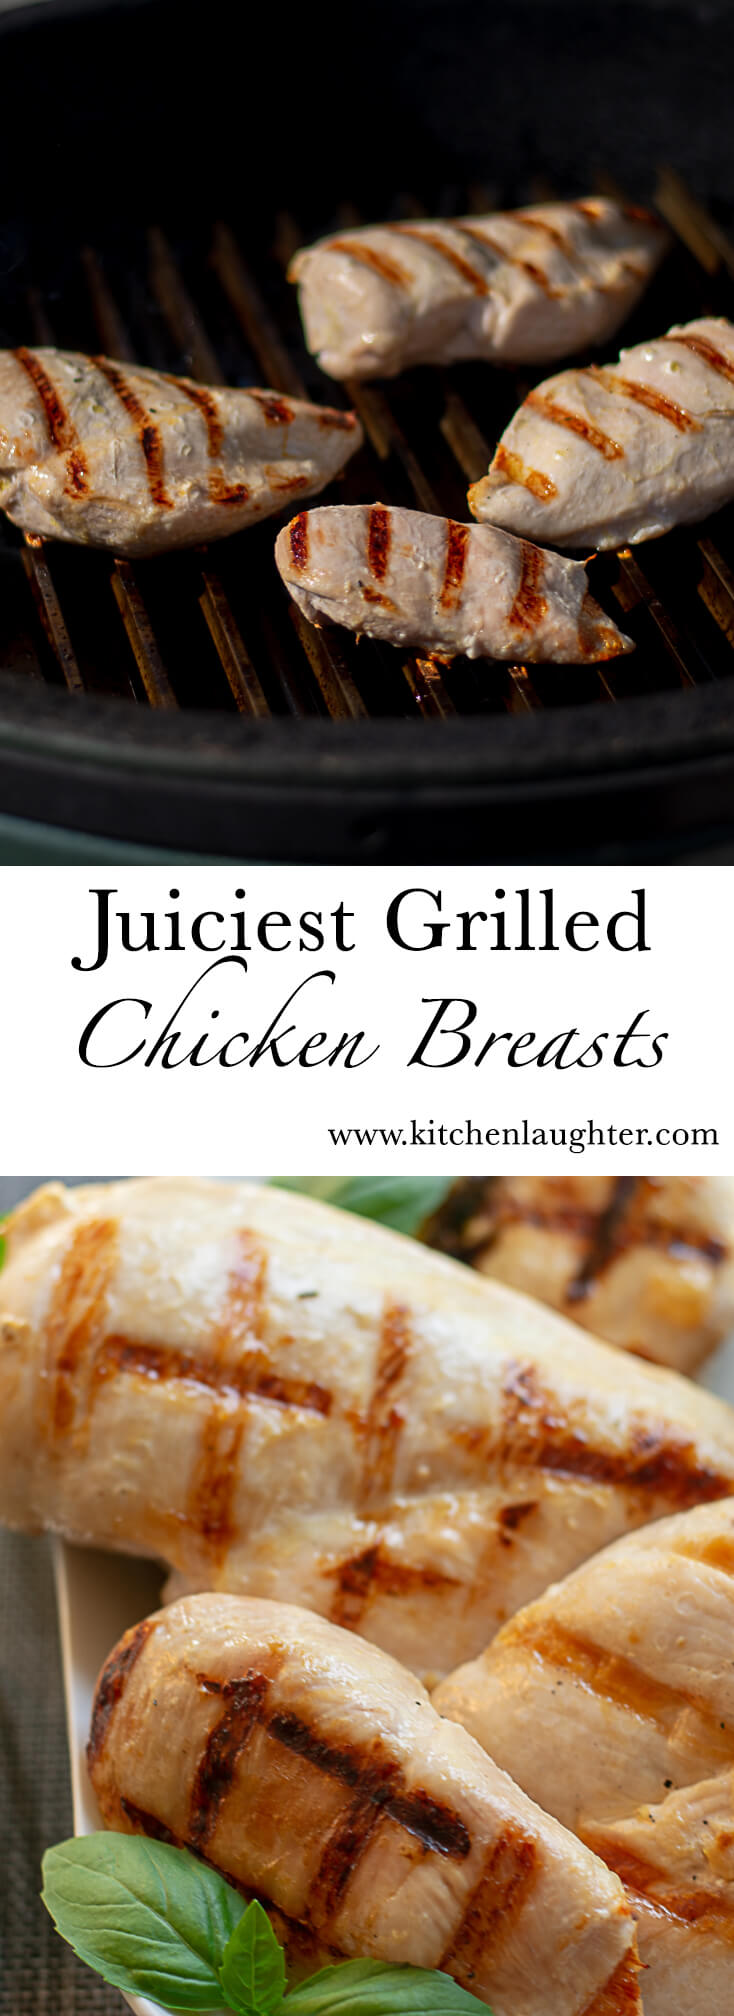 Juicy Chicken Breast on the Big Green Egg #BGE #GrilledChicken #BigGreenEgg #Grill #Grilled #ChickenBreast